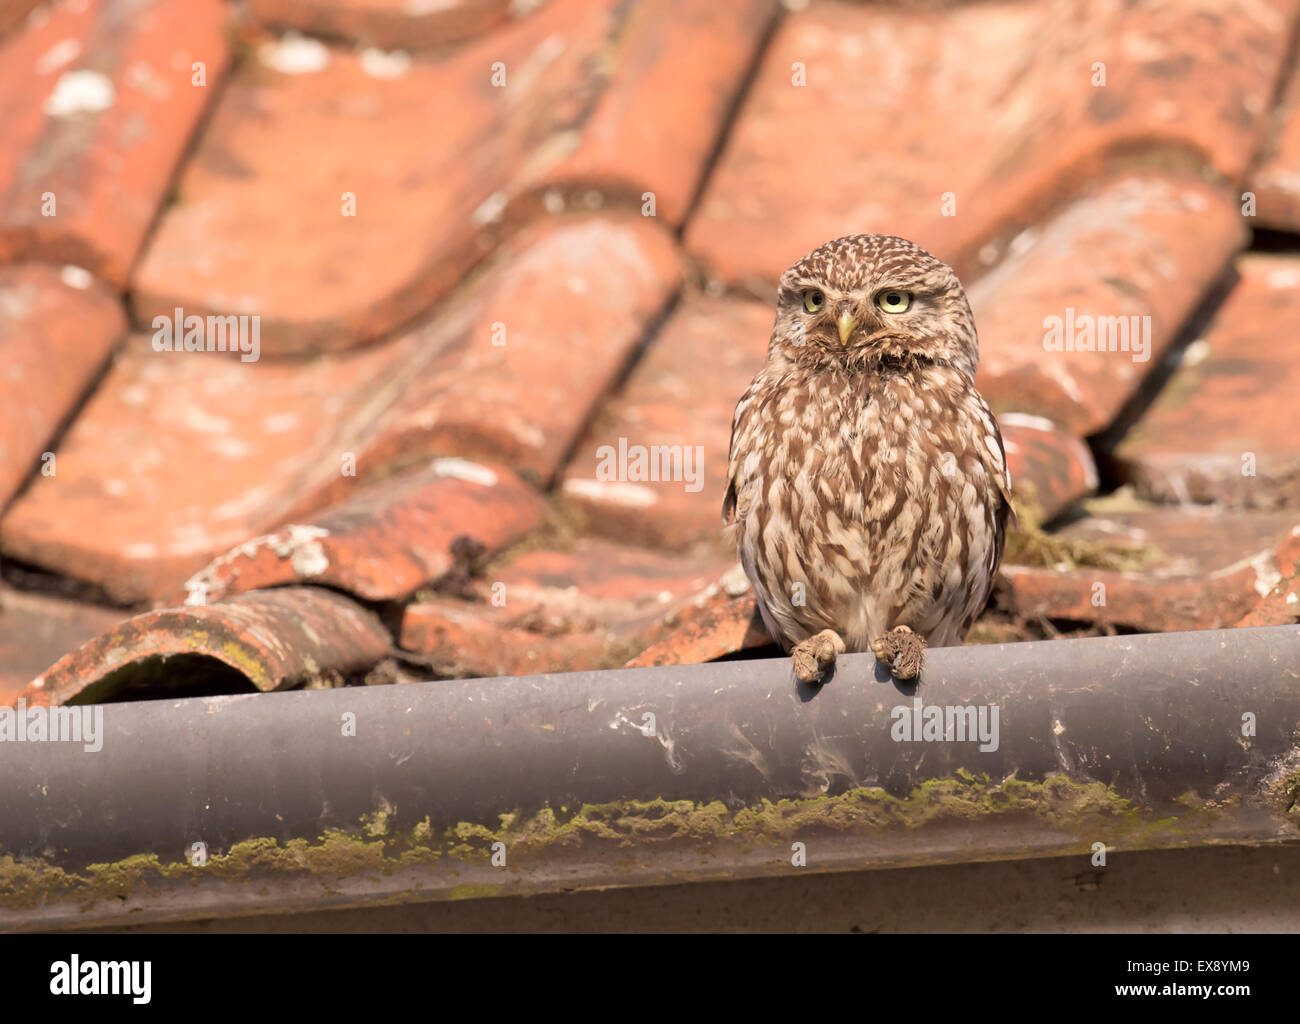 Adult Little Owl (Athene noctua) perched on roof guttering of farmhouse Stock Photo